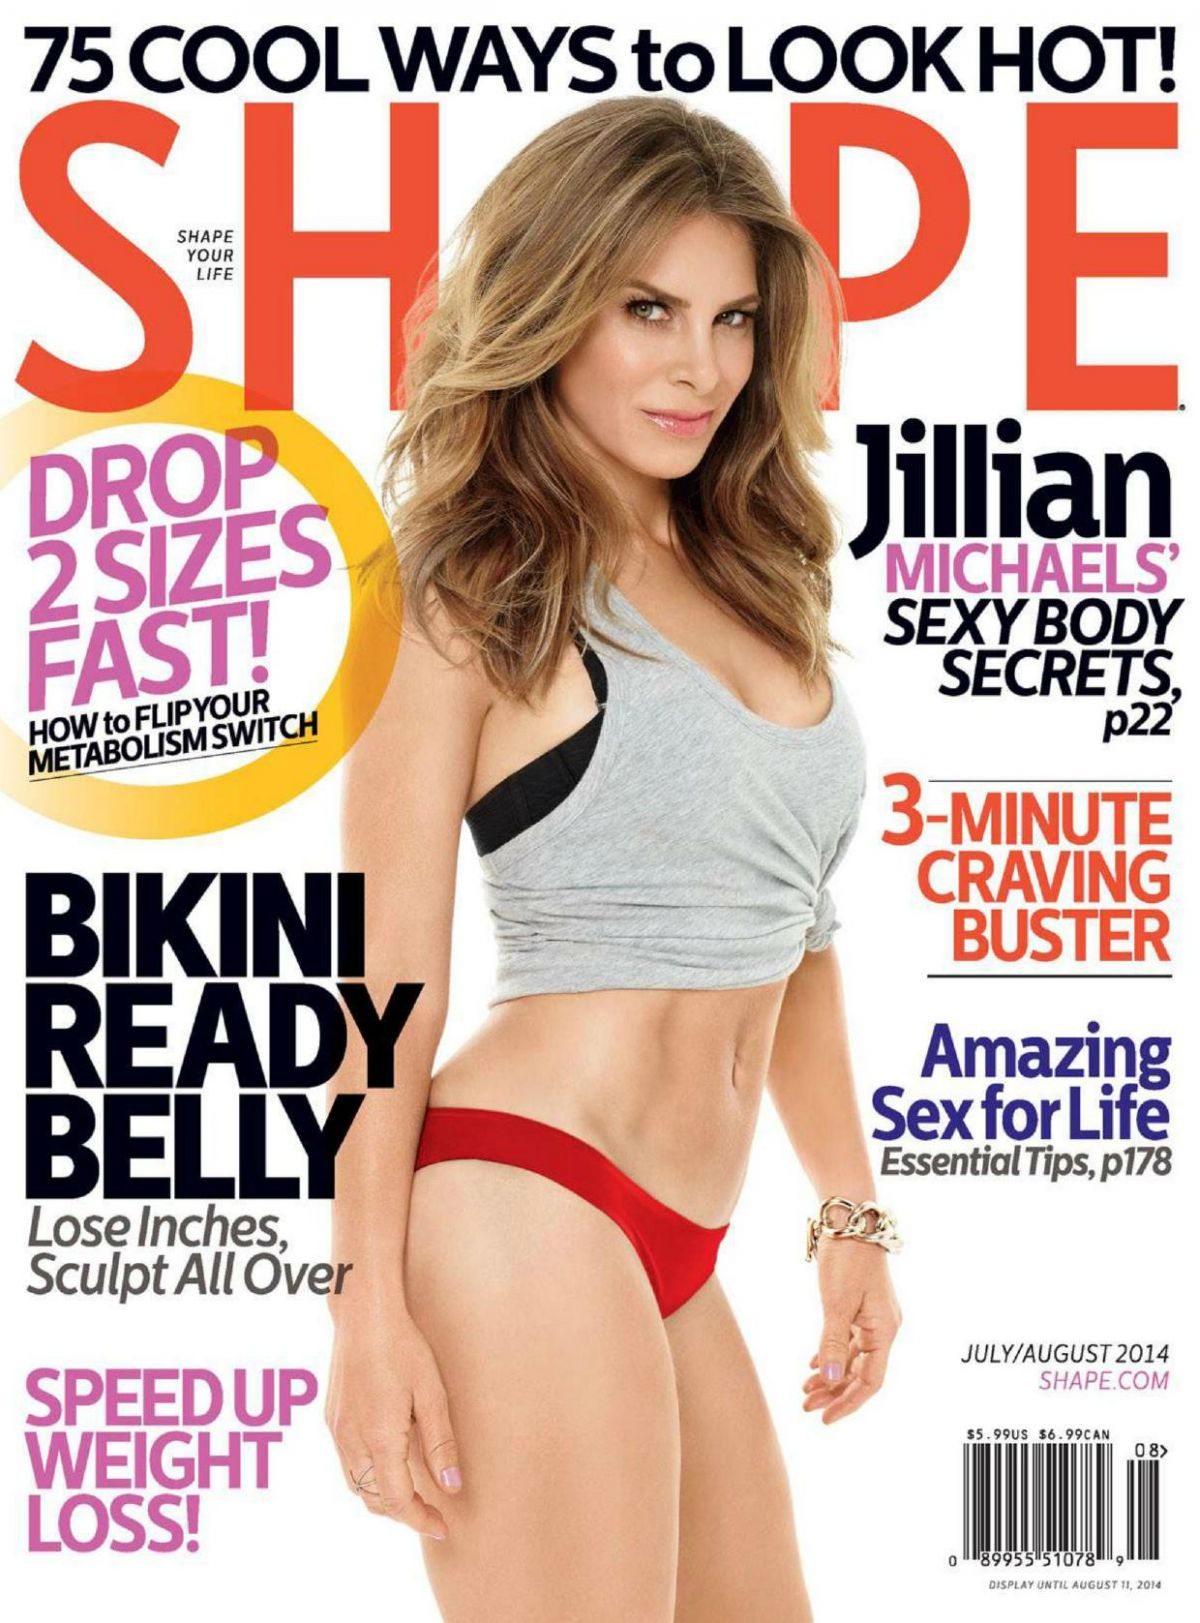 Jillian michaels has hairy arms